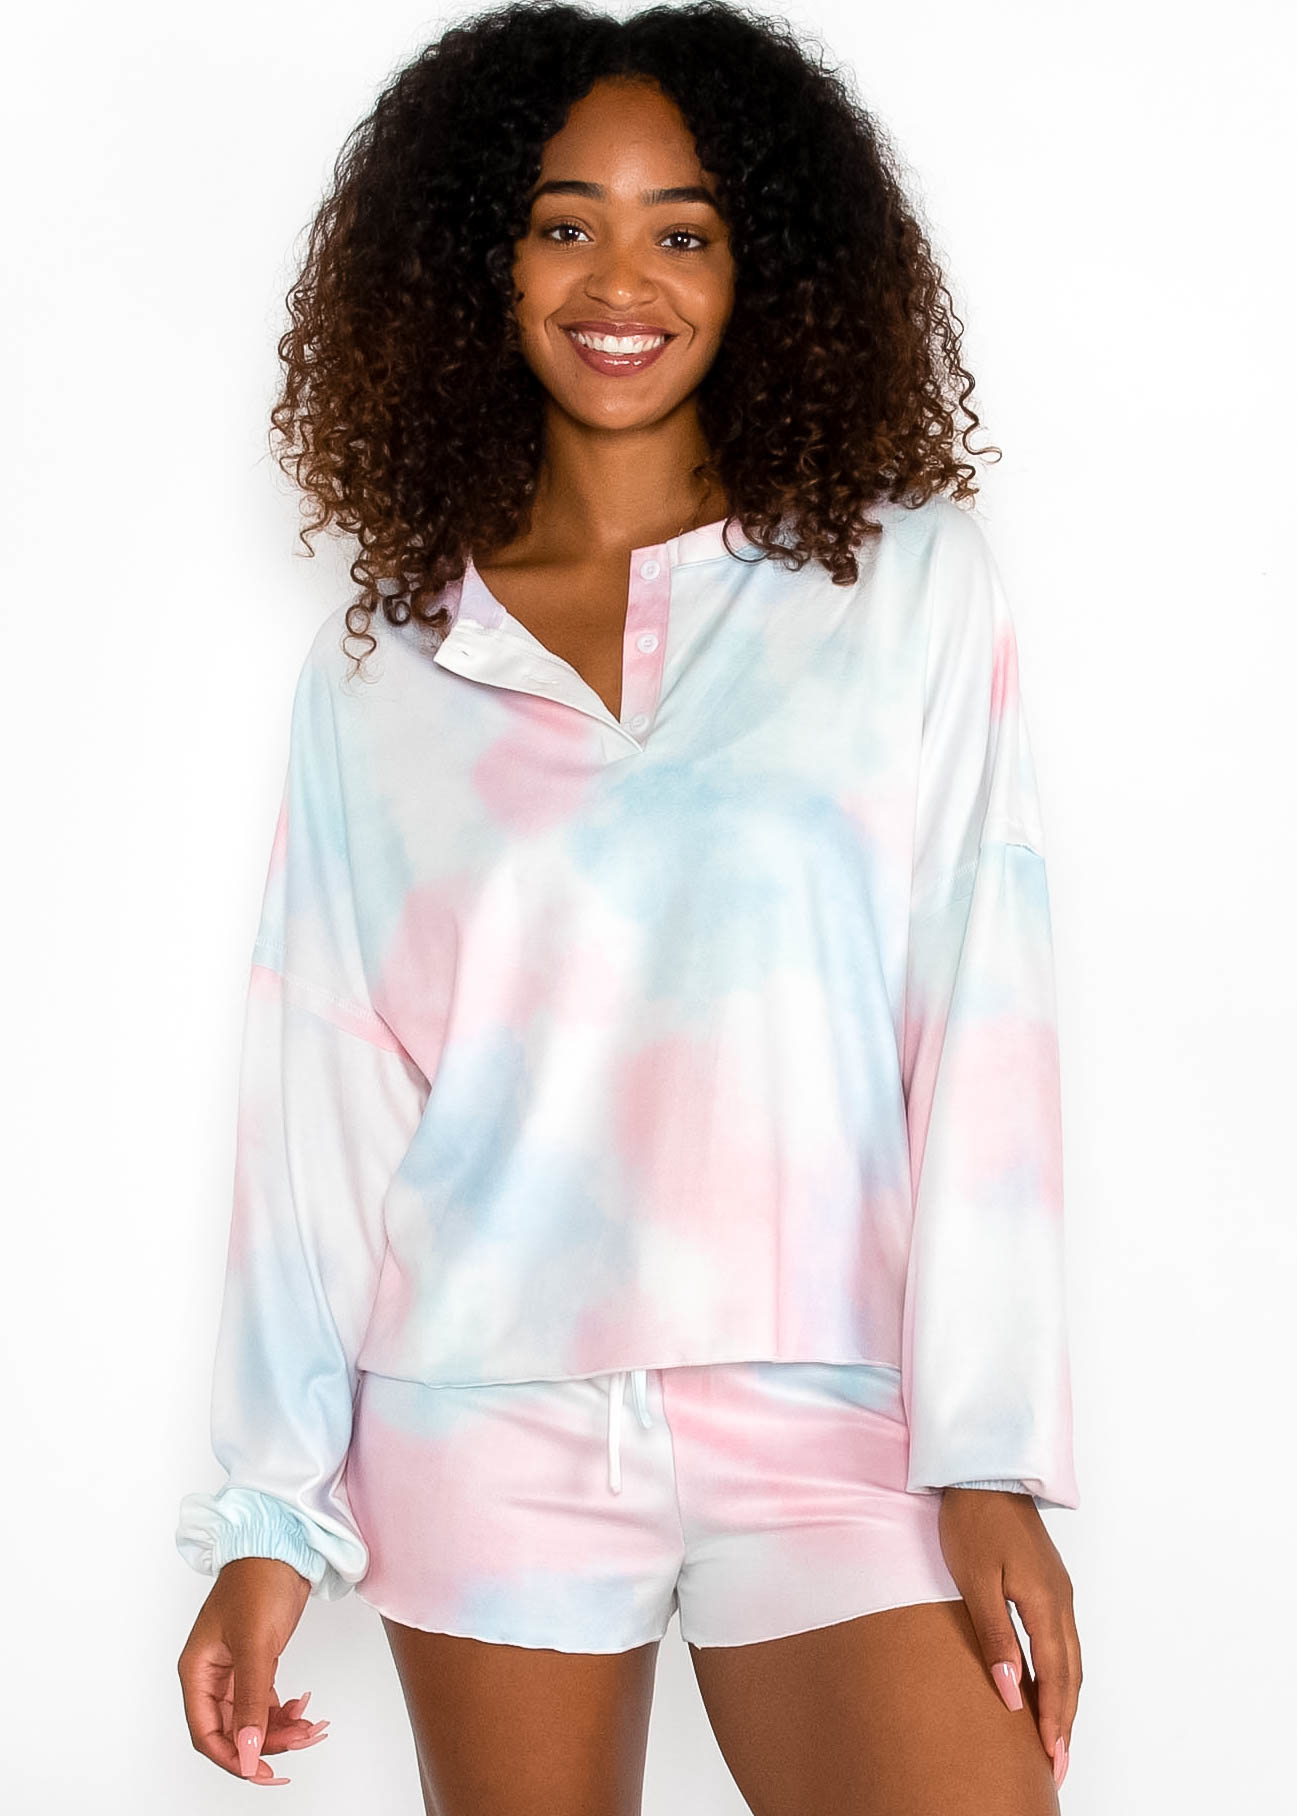 MORE THAN COZY TIE DYE HENLEY TOP